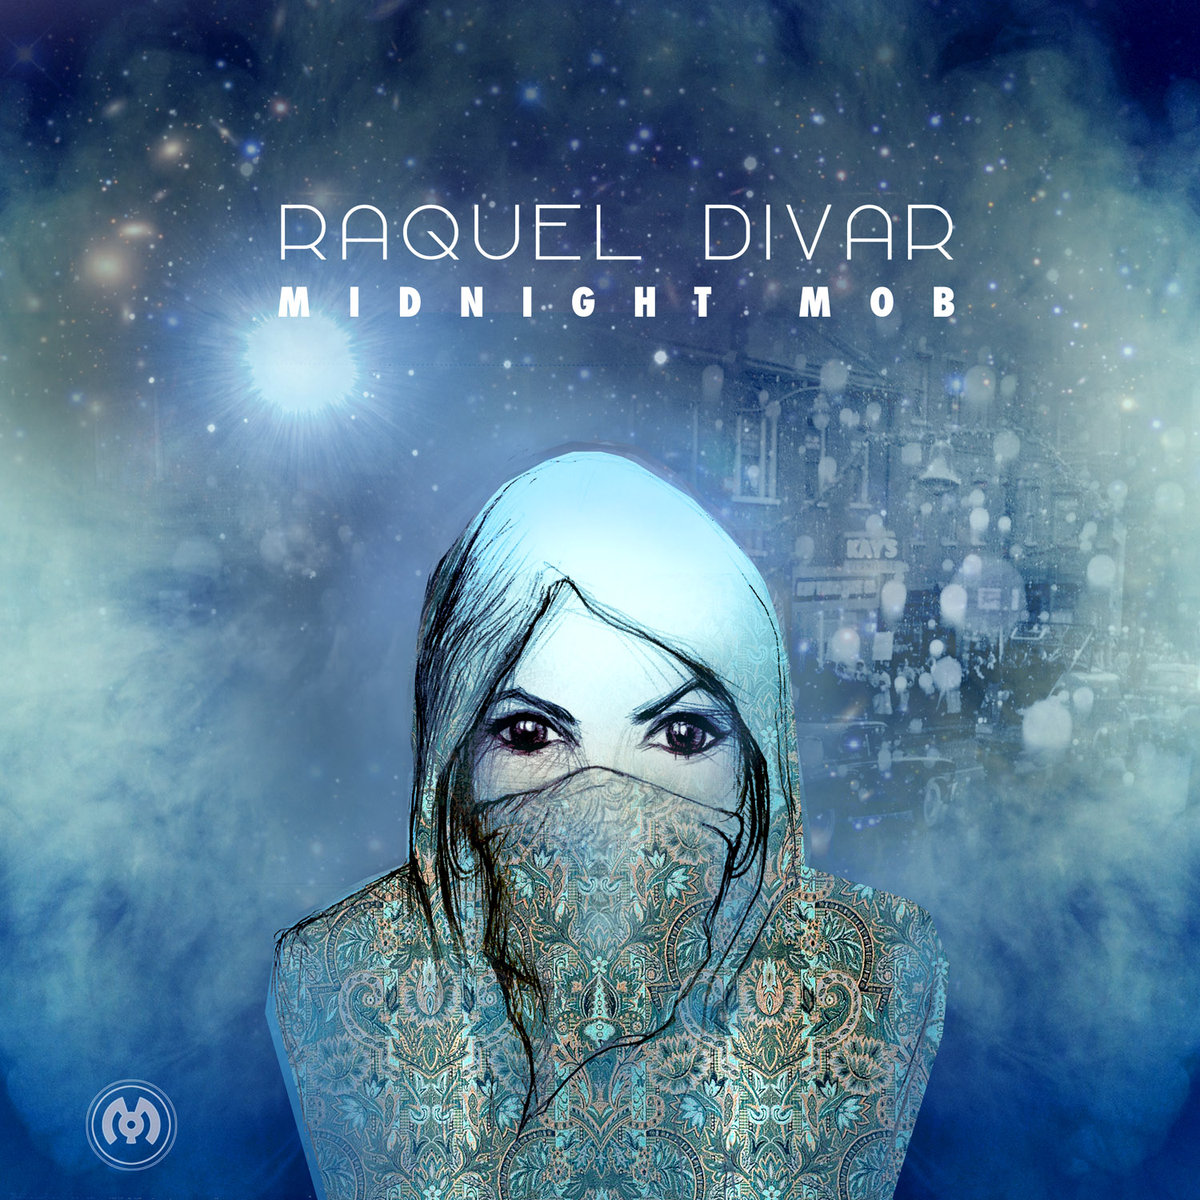 Raquel Divar - Midnight Mob @ 'Midnight Mob' album (electronic, dubstep)